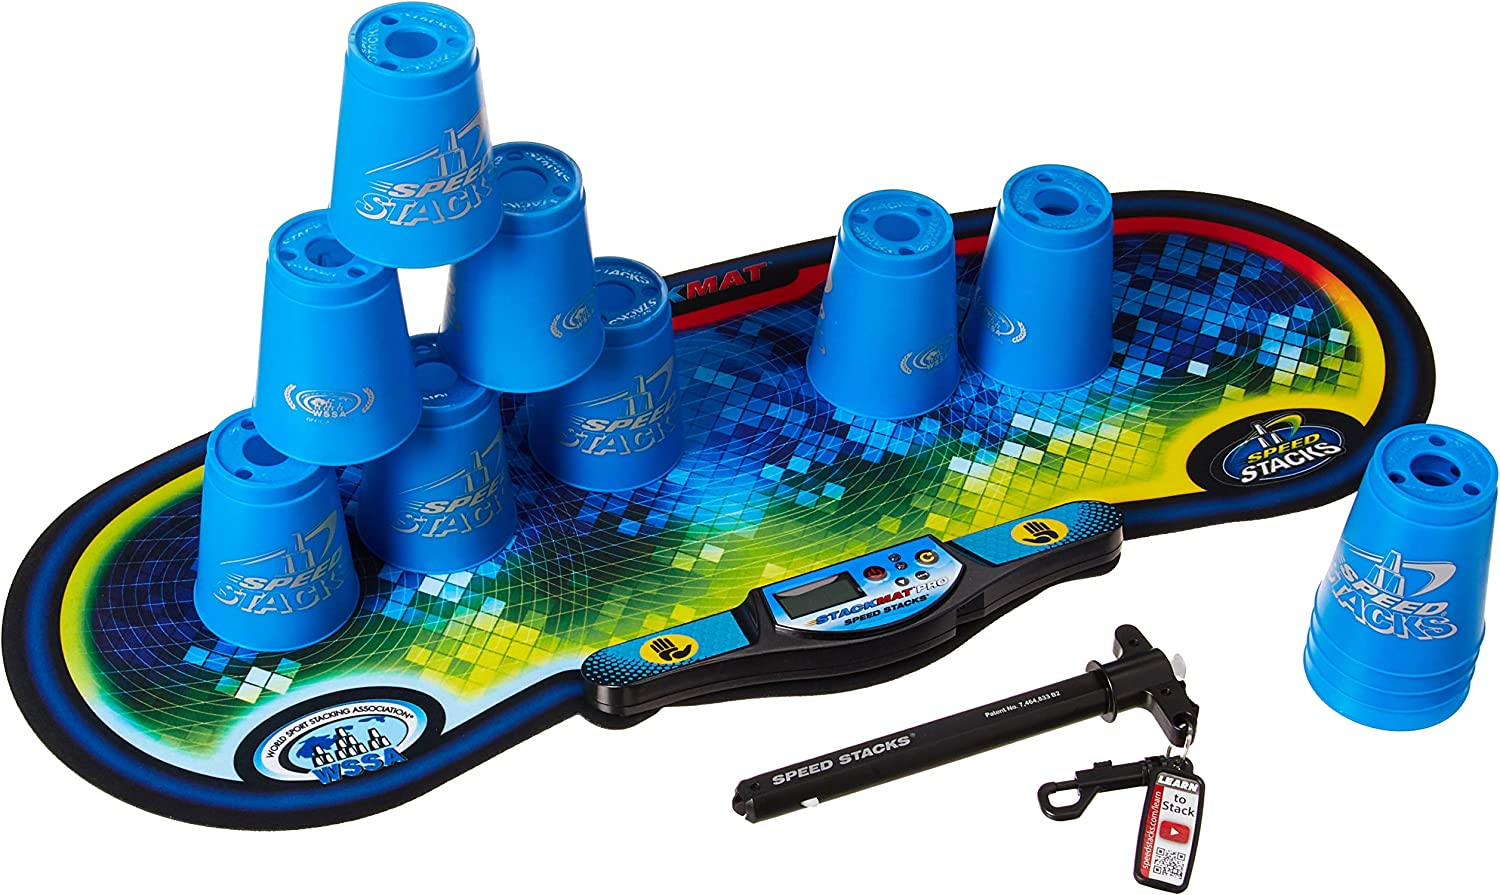 Ranking TOP2 Speed Stacks Competitor - Fashion Cool Blue Voxel w Mat Glow